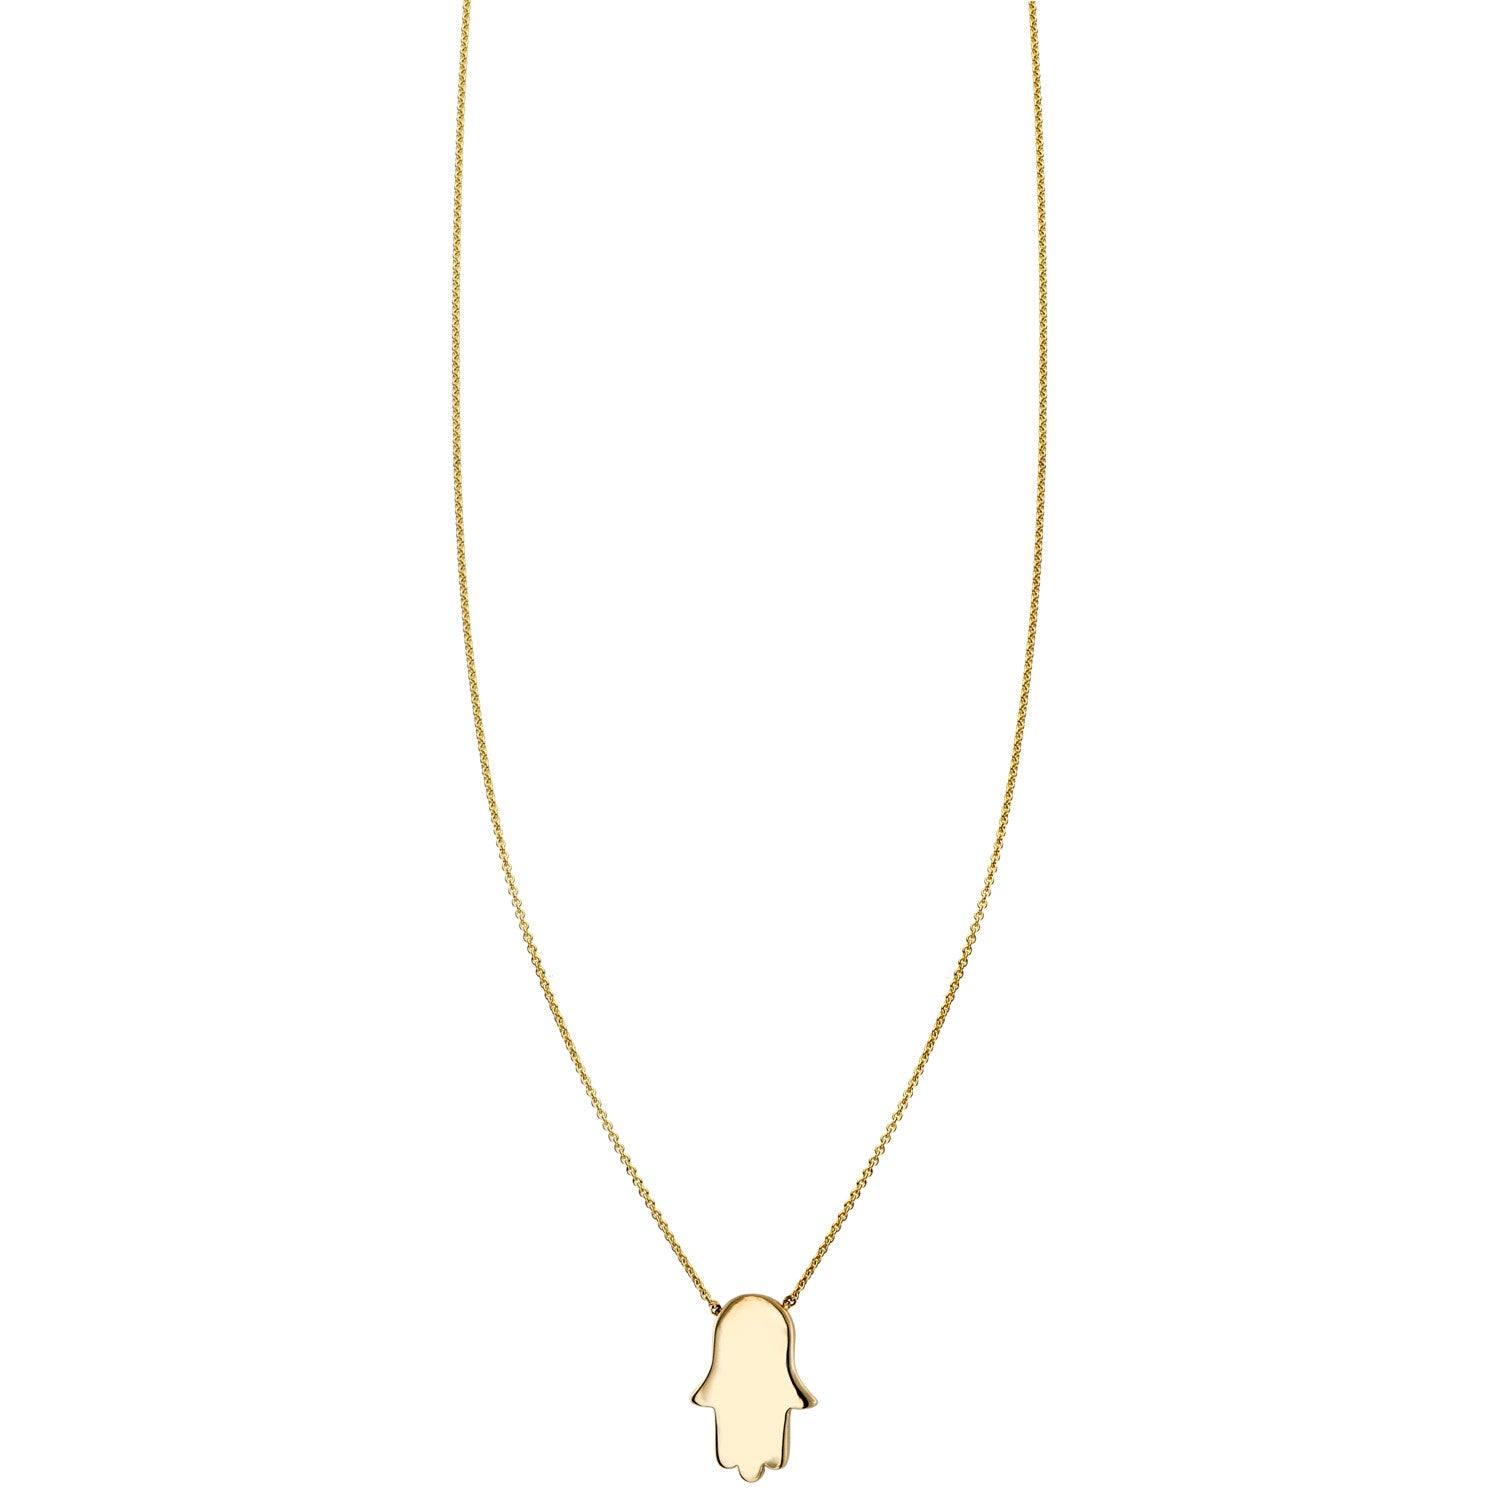 Gold hamsa hand charm pendant necklace